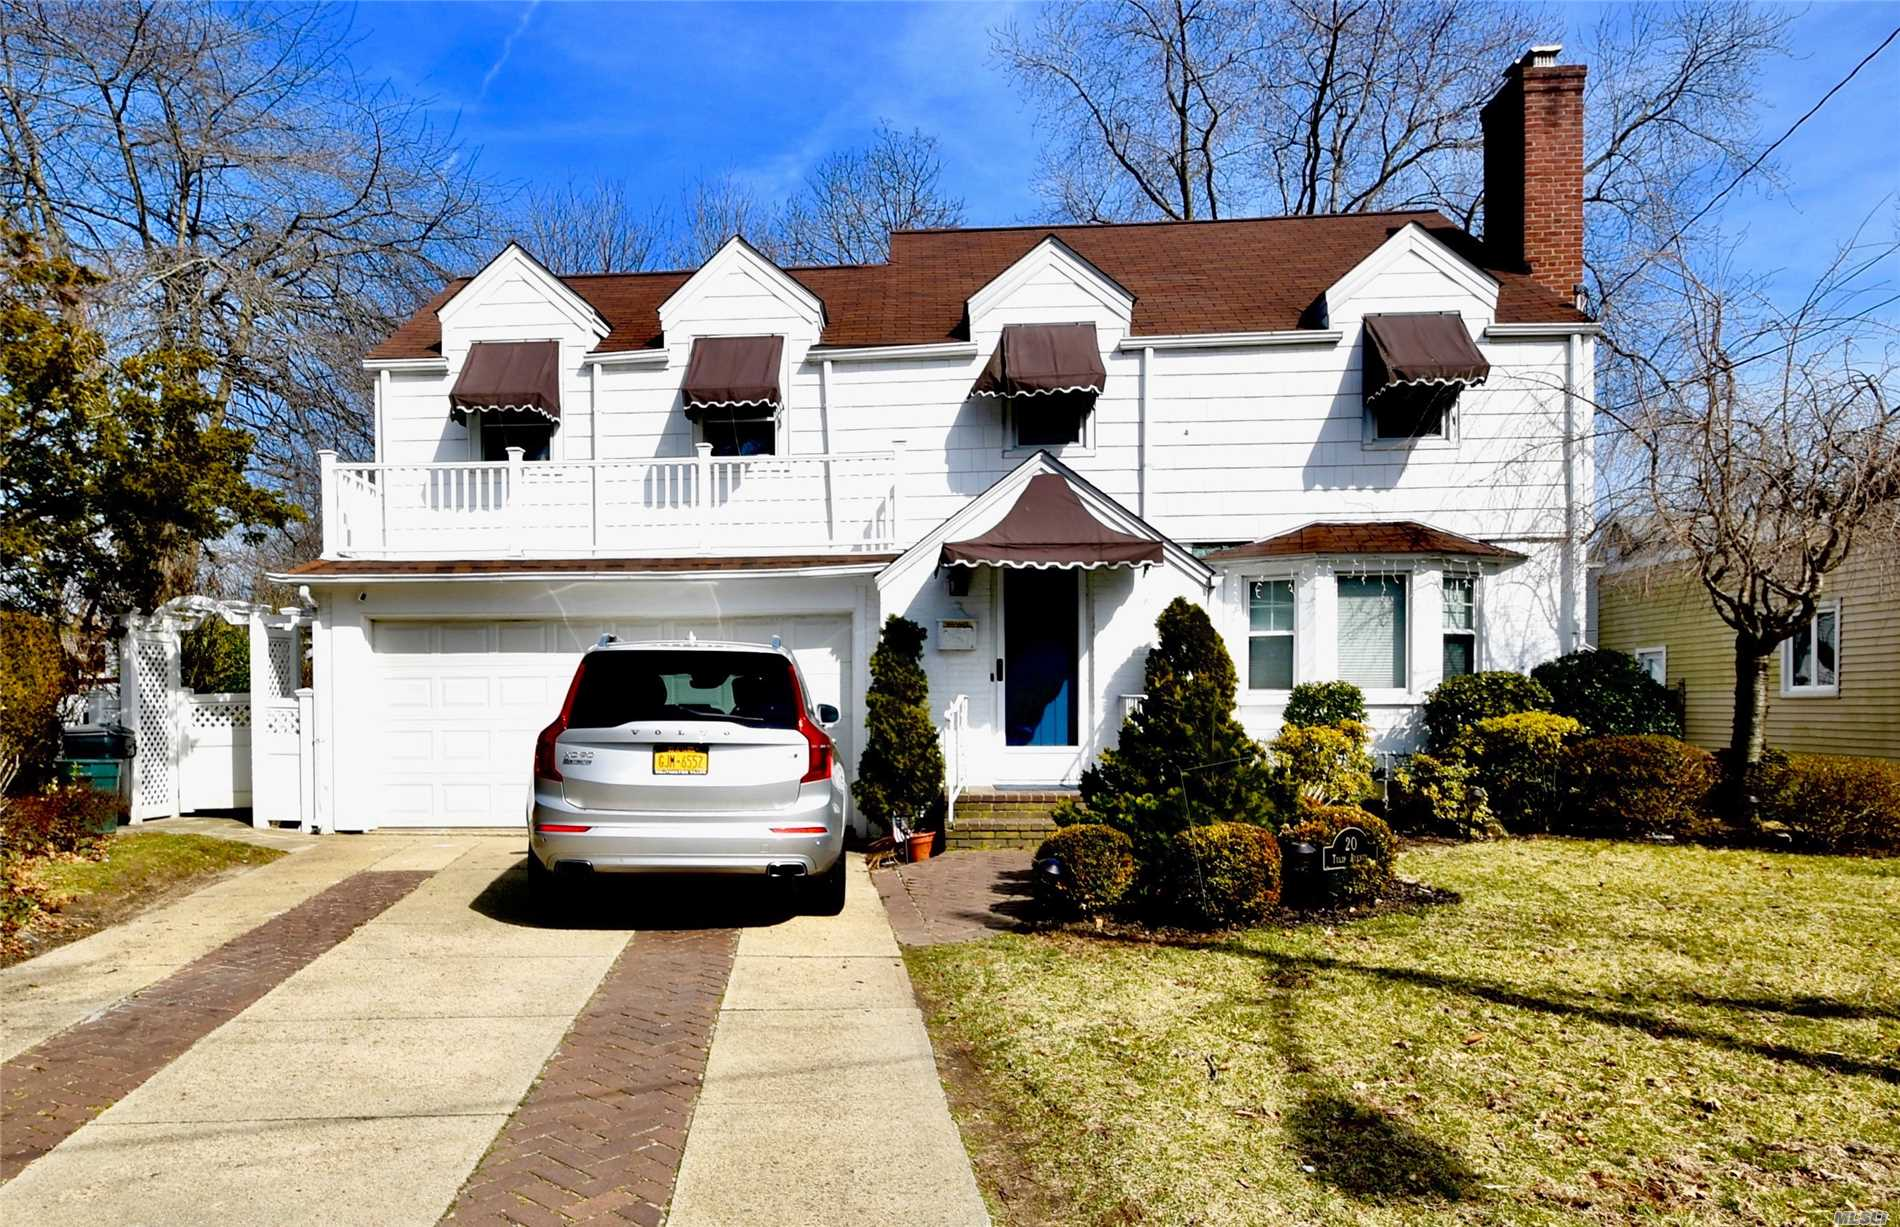 Don't miss out on this great opportunity to own this gorgeous 4 Bedroom 2 1/2 Bath Colonial featuring a Fully Renovated kitchen with a Huge Granite Countertop Island, Hardwood Cabinets and Stainless Steel Appliances. The owner is a Contractor and spared no expenses when he upgraded the home!!! If you need access to the LIRR, this home is FOR YOU!!! It's a 1 minute drive to the train station, or better yet a 5 minute walk as its .3 miles away! IF you drive to work we're close to the SSP as well!!